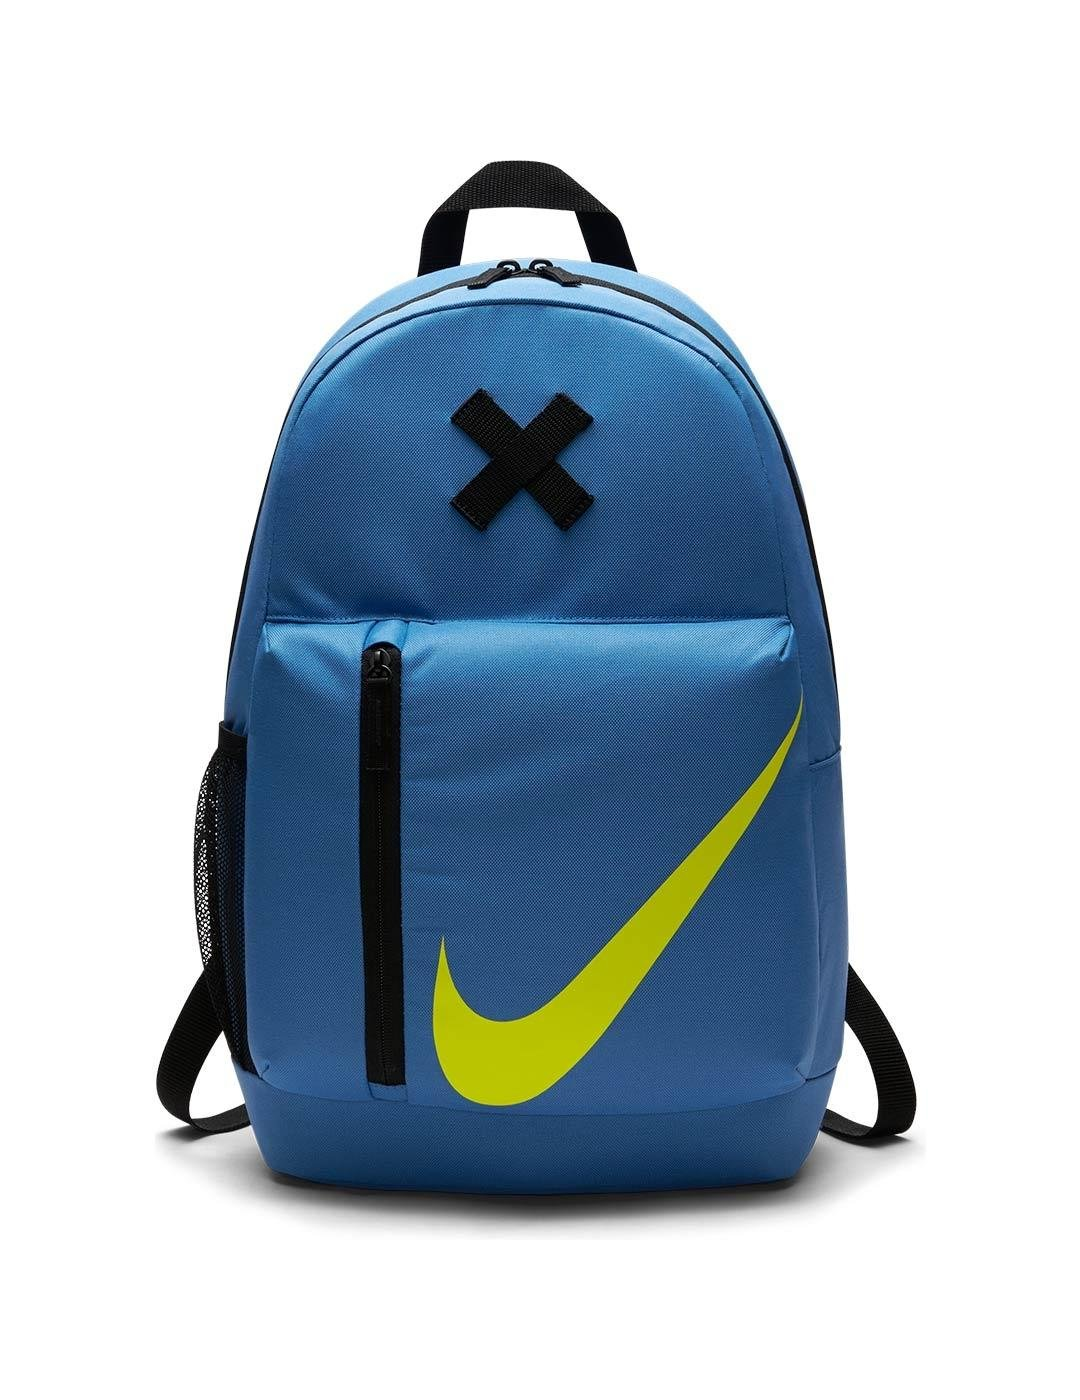 4cbe0c050800 Nike Polyester 22Liters Blue School Backpack  Amazon.in  Bags ...